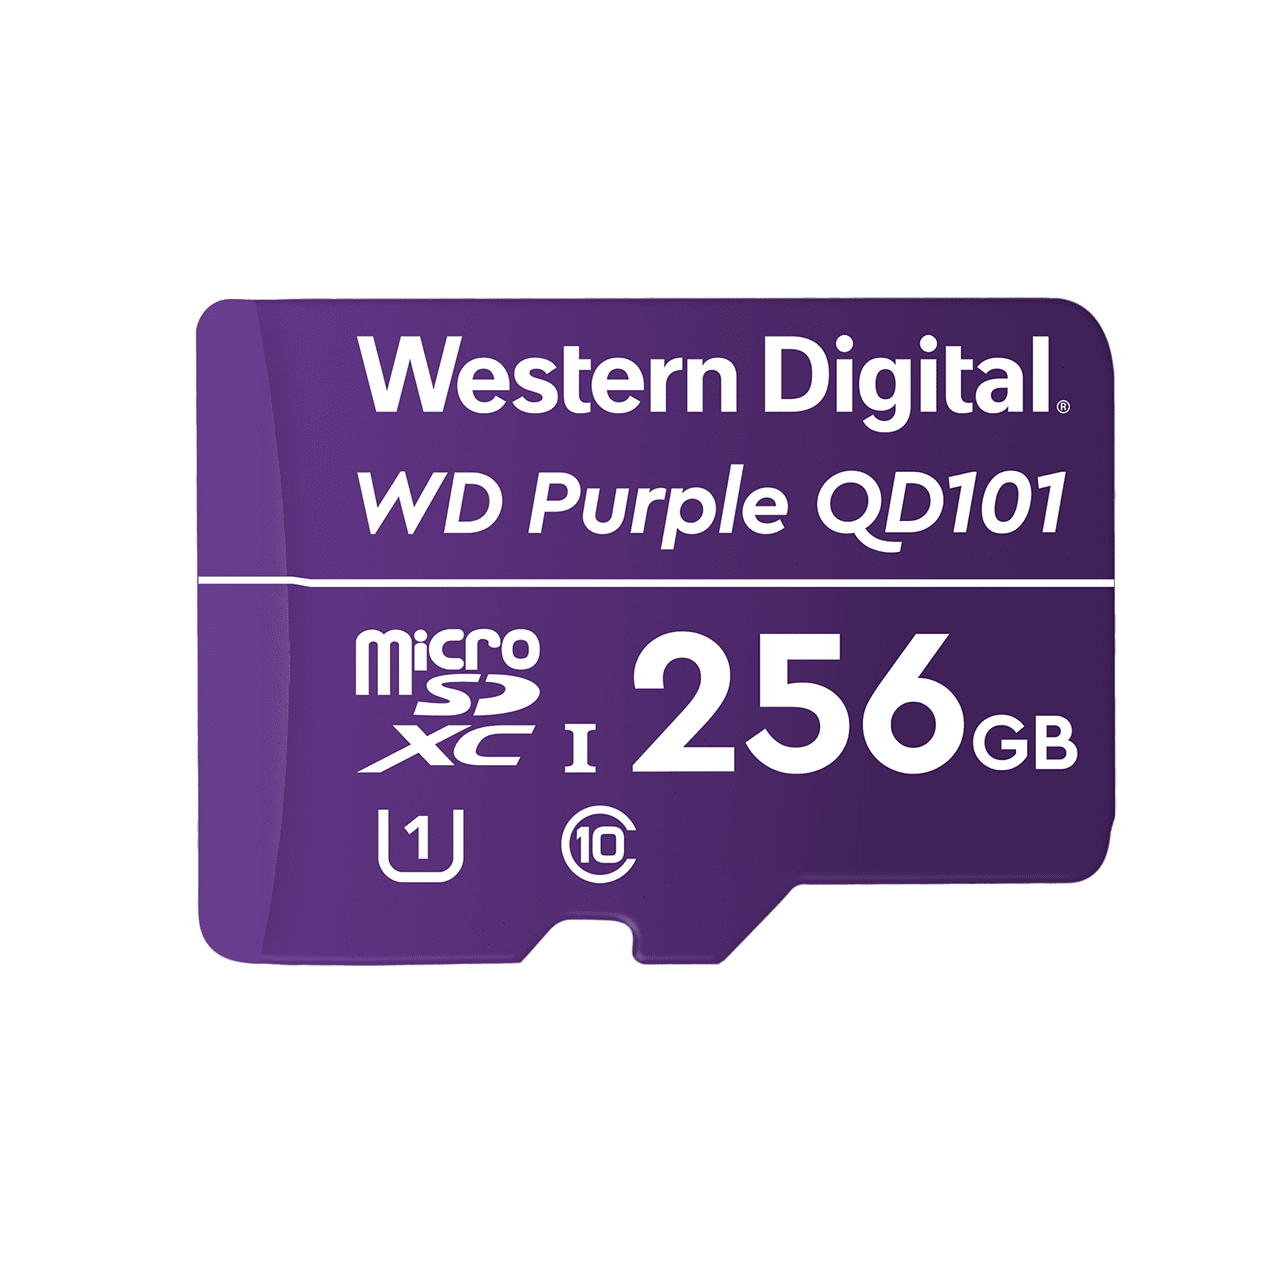 Western Digital 256GB mSD card